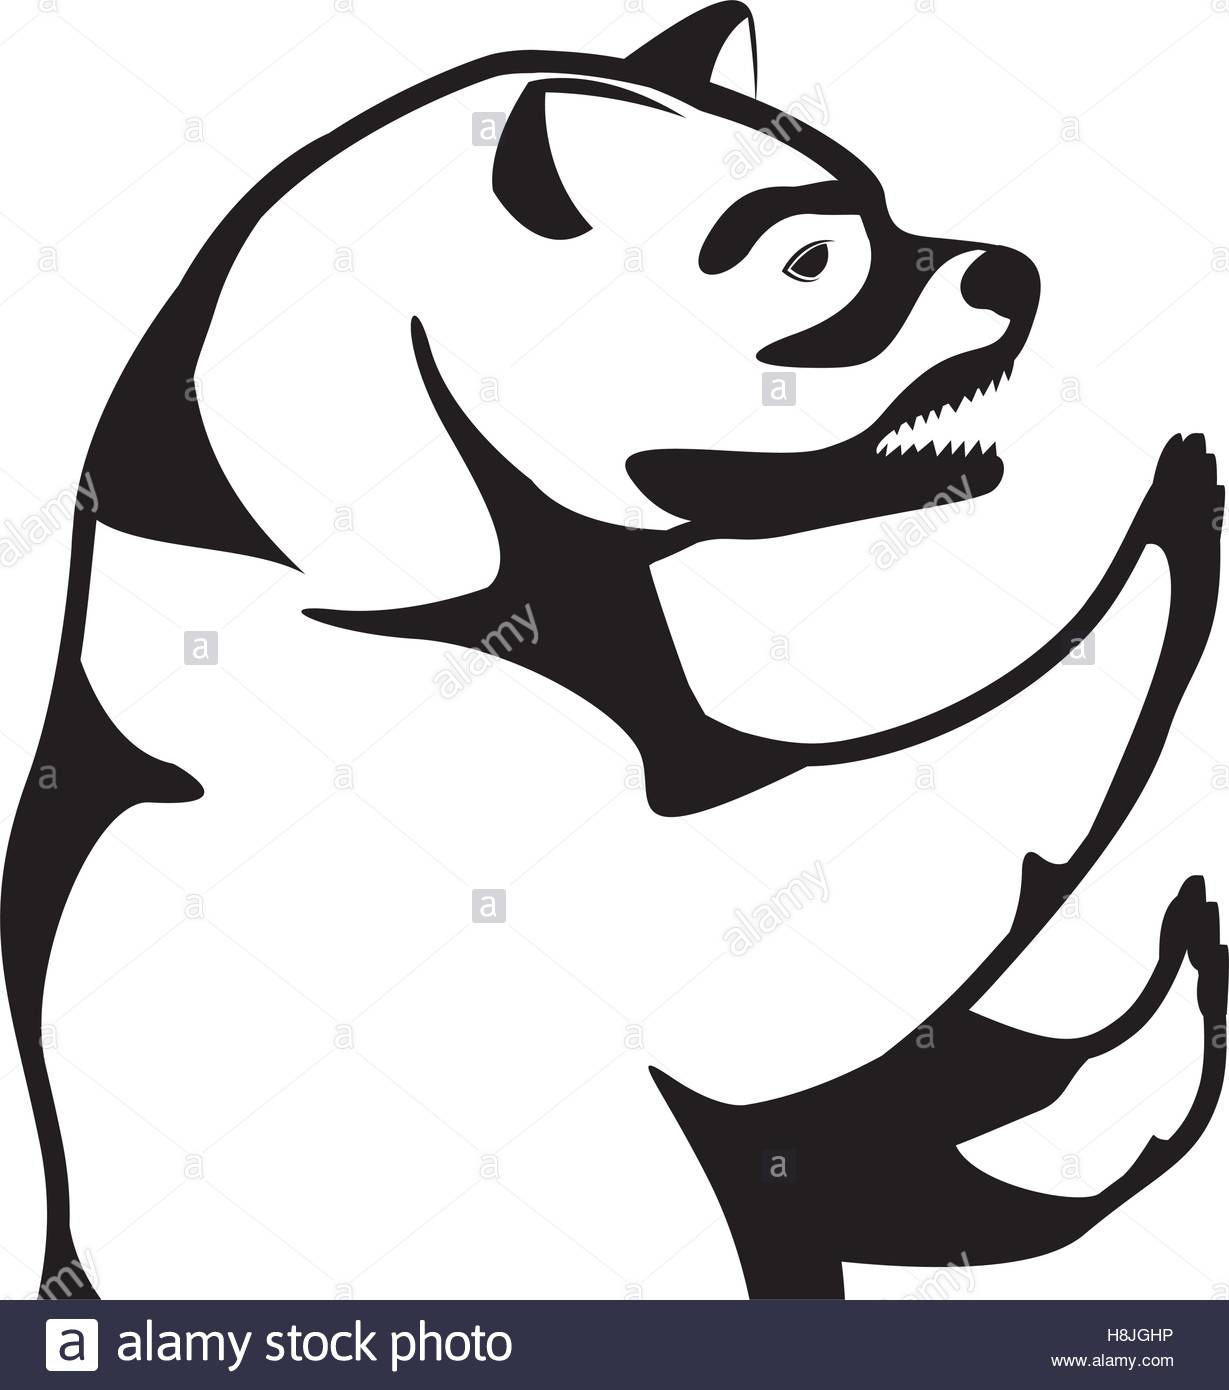 1229x1390 Monochrome Silhouette With Half Body Bear Vector Illustration